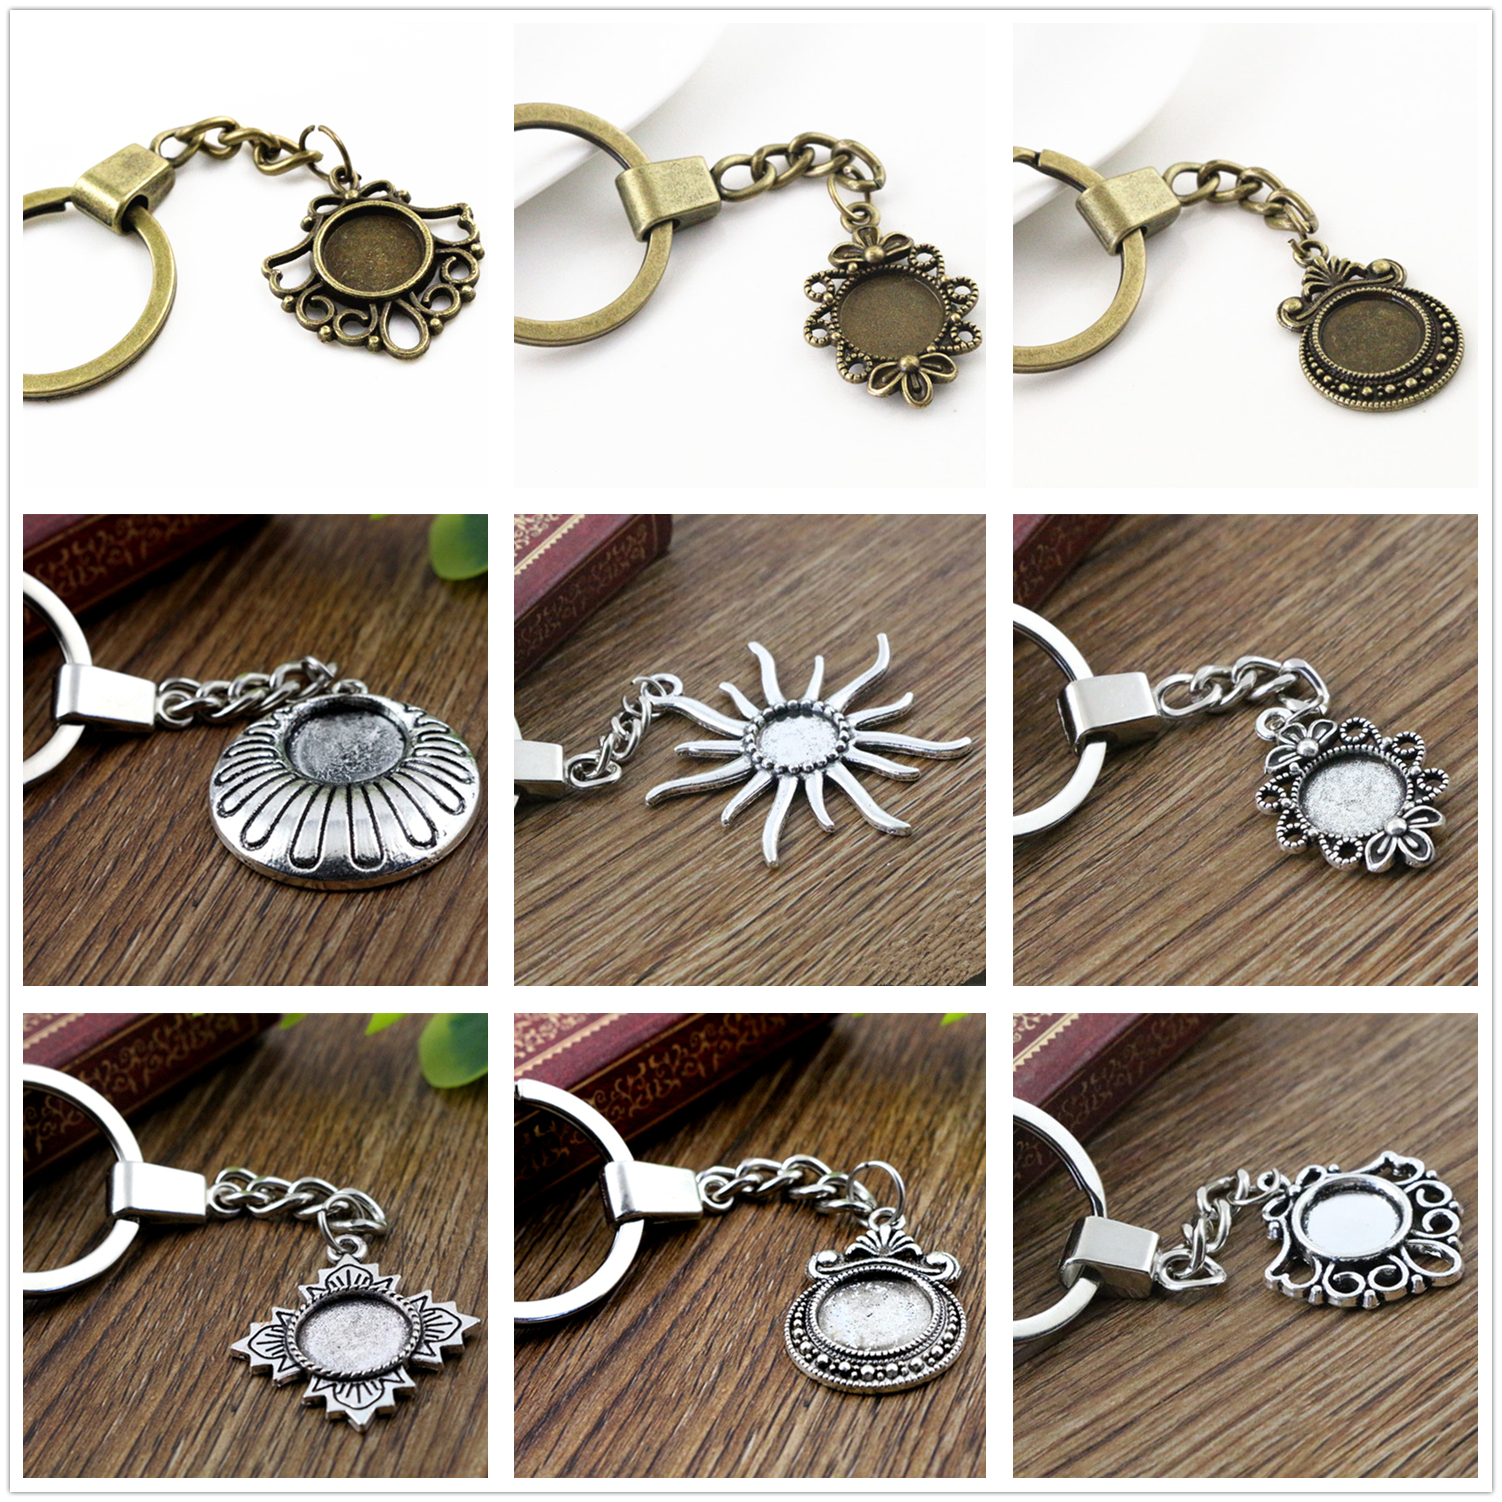 2pcs 12mm Inner Size Antique Silver / Bronze plated Cameo Setting Base;Handmade Cameo Setting, Metal Key Chains Accessor